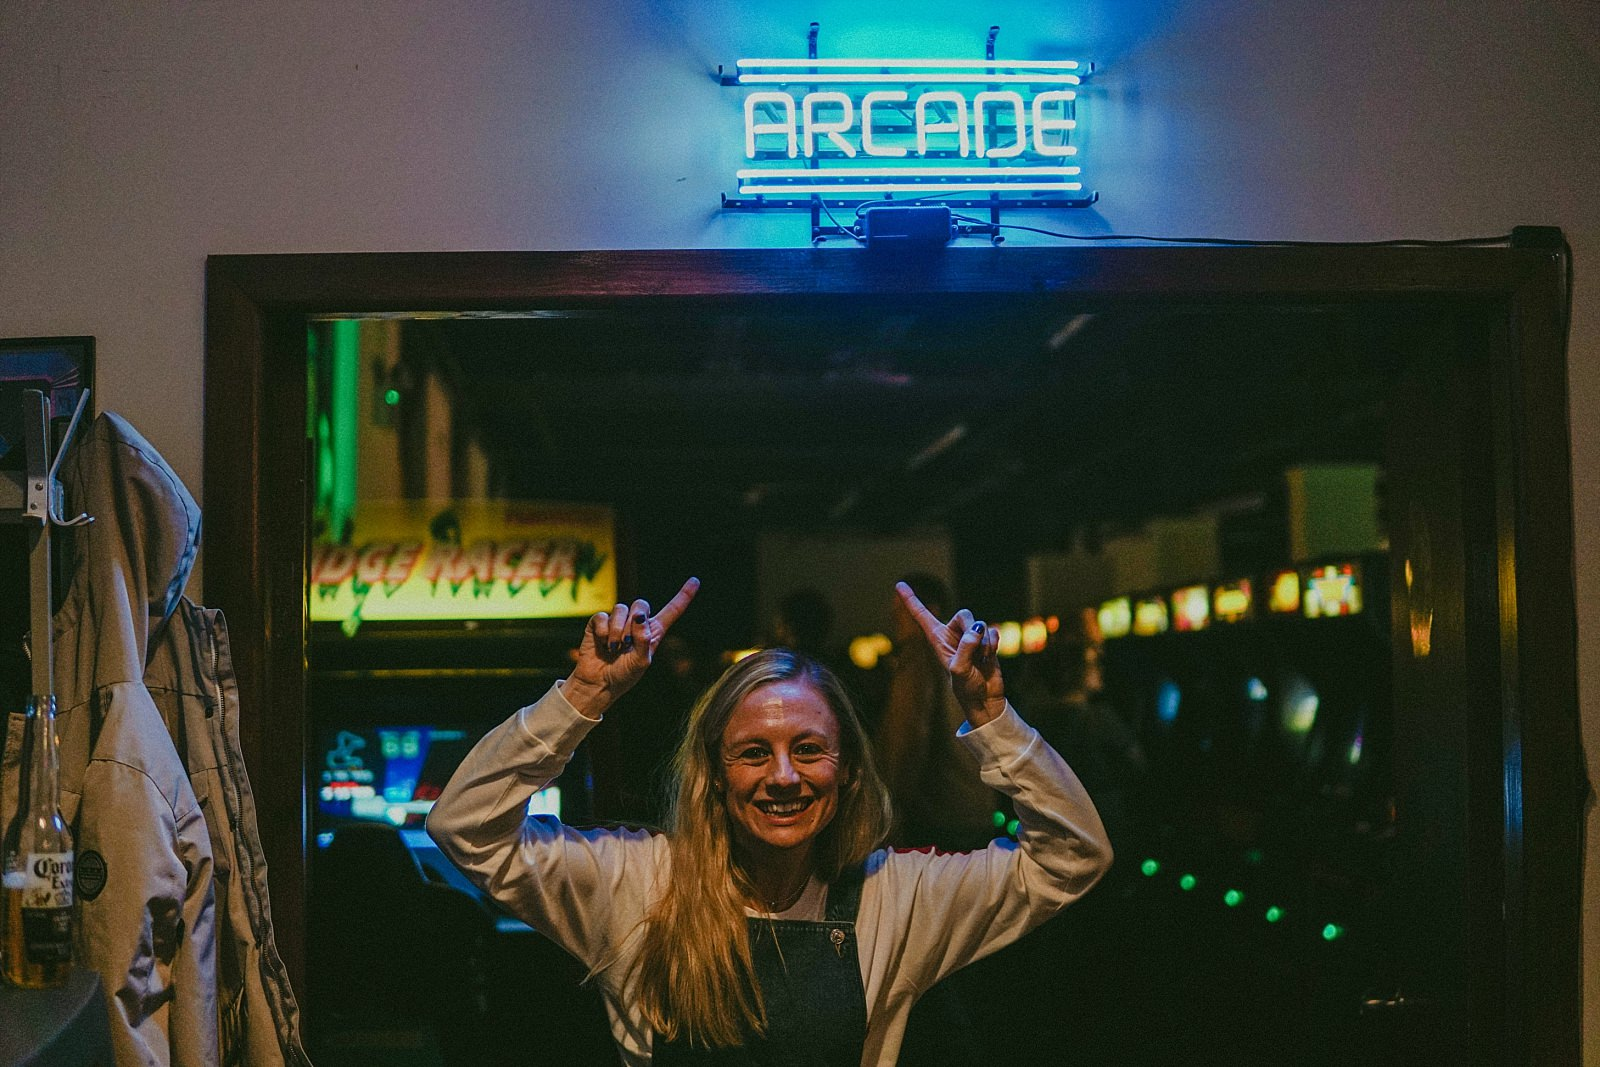 girl pointing to arcade sign